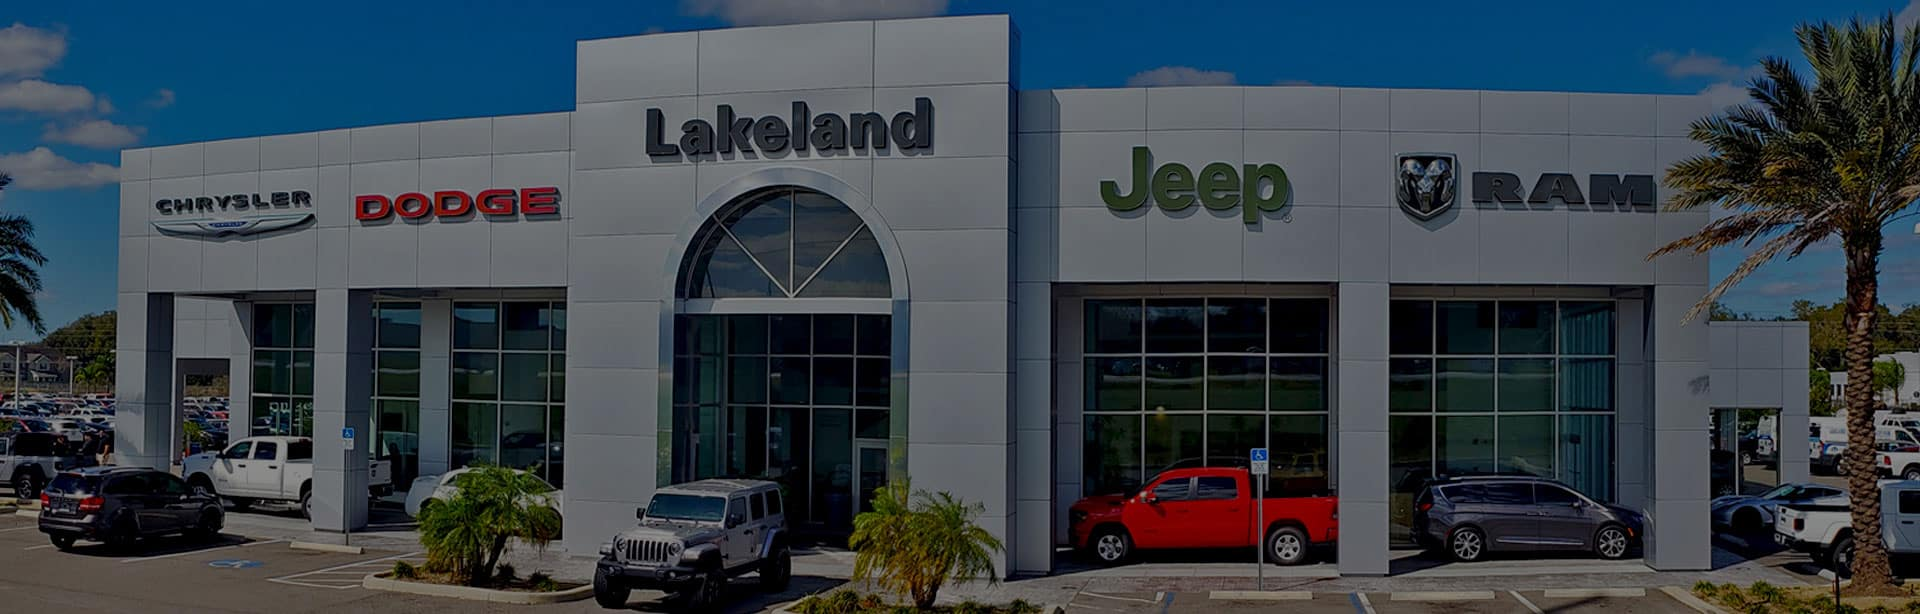 lakeland dodge dealership